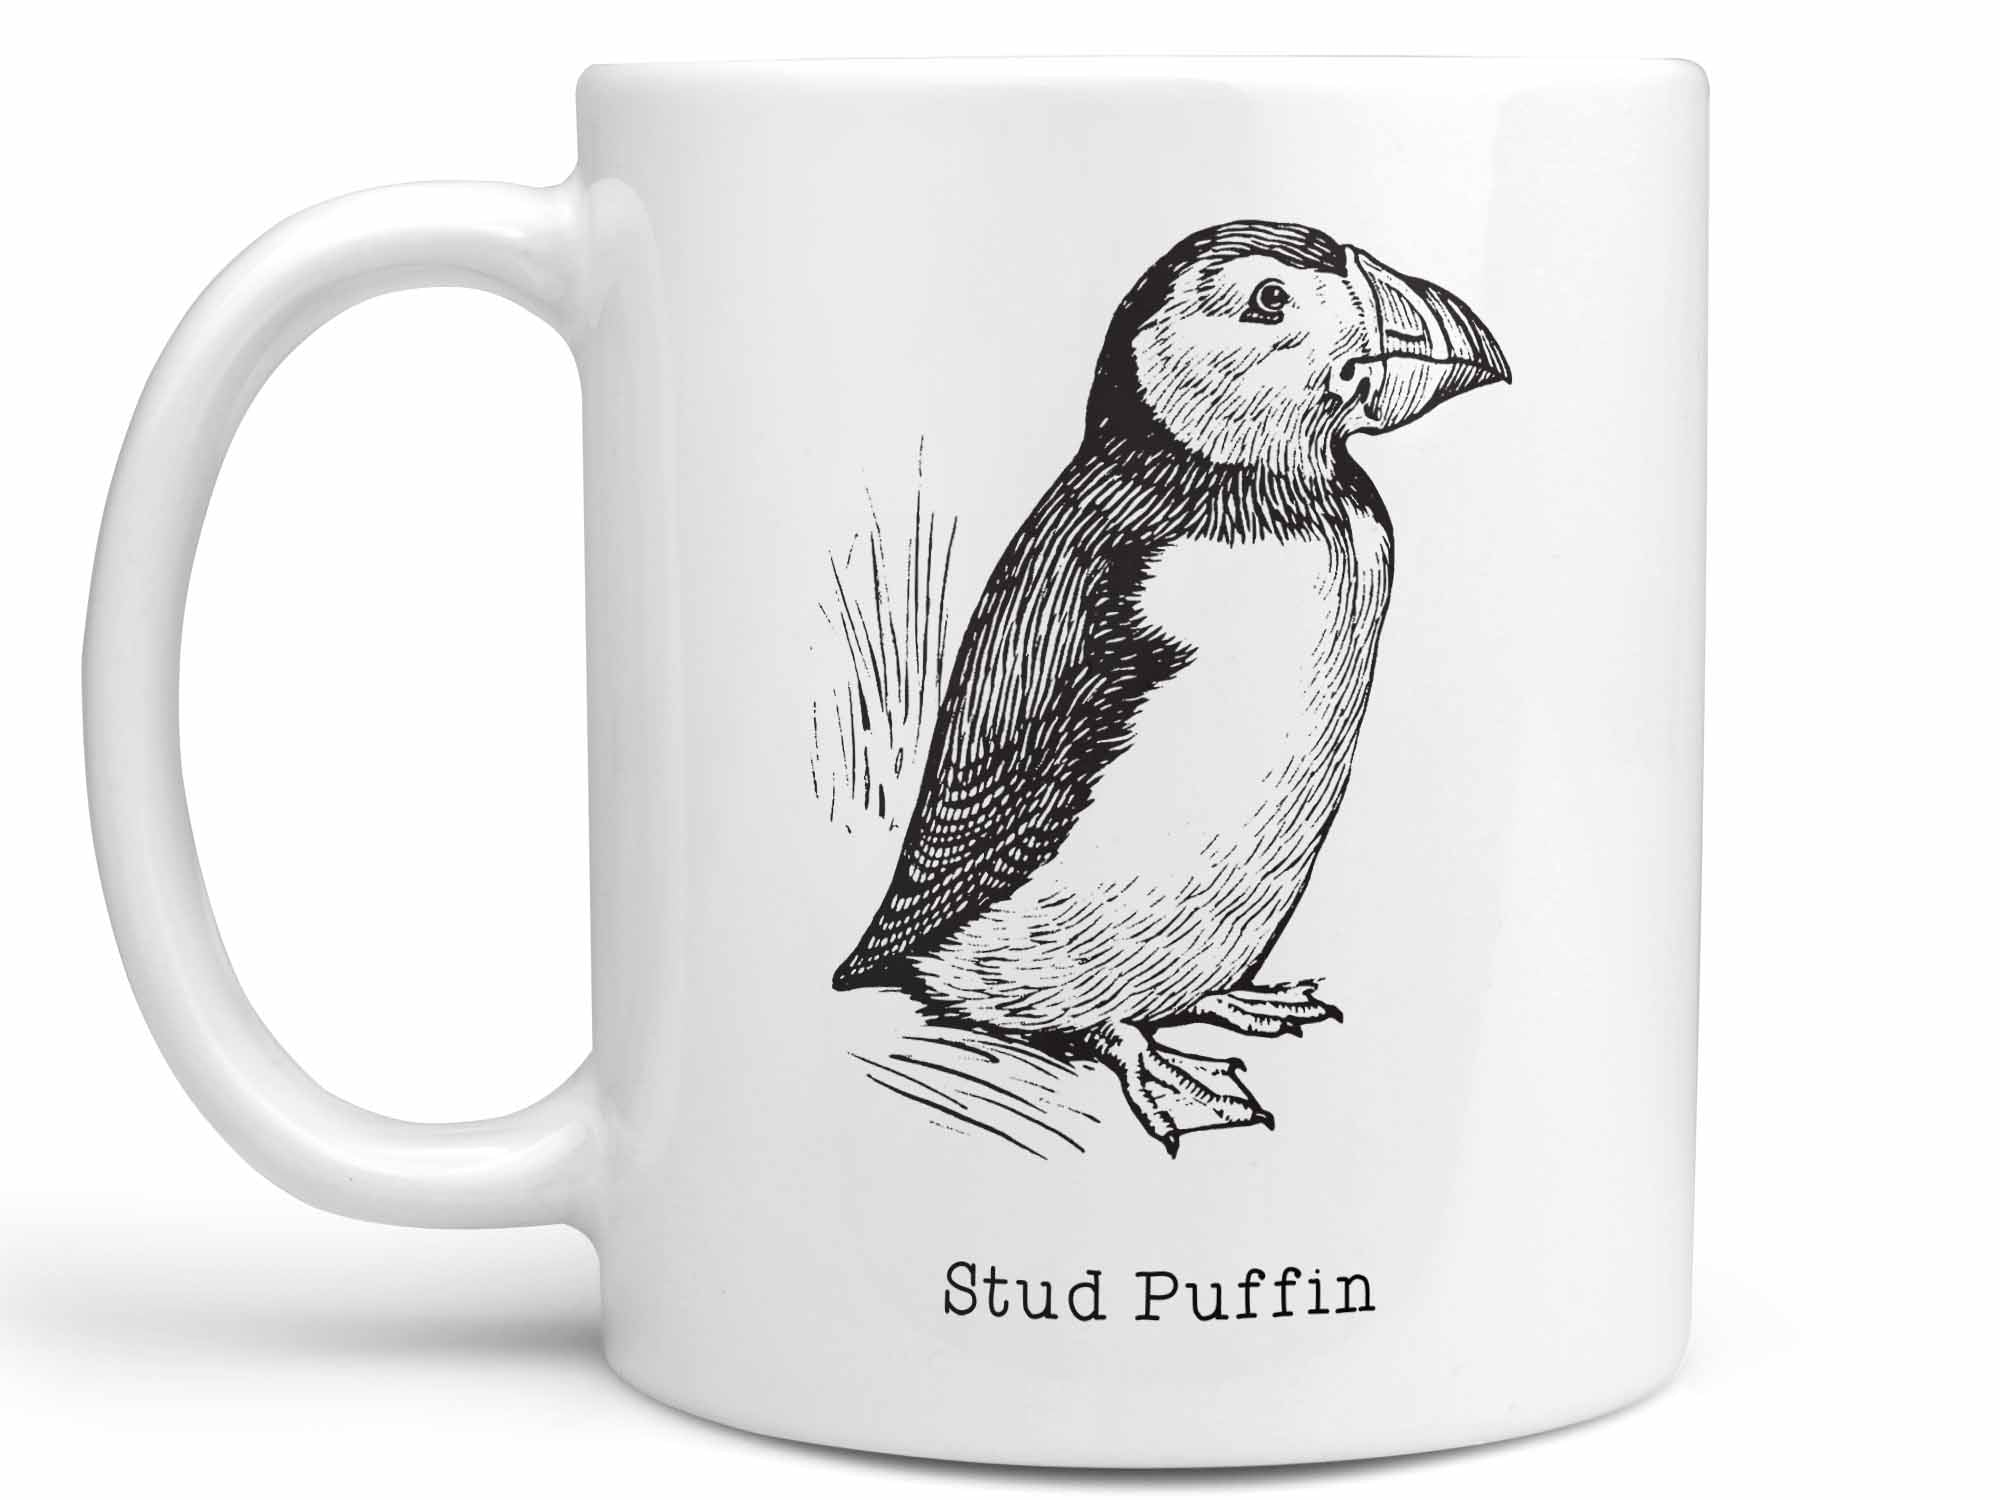 Stud Puffin Coffee Mug,Coffee Mugs Never Lie,Coffee Mug